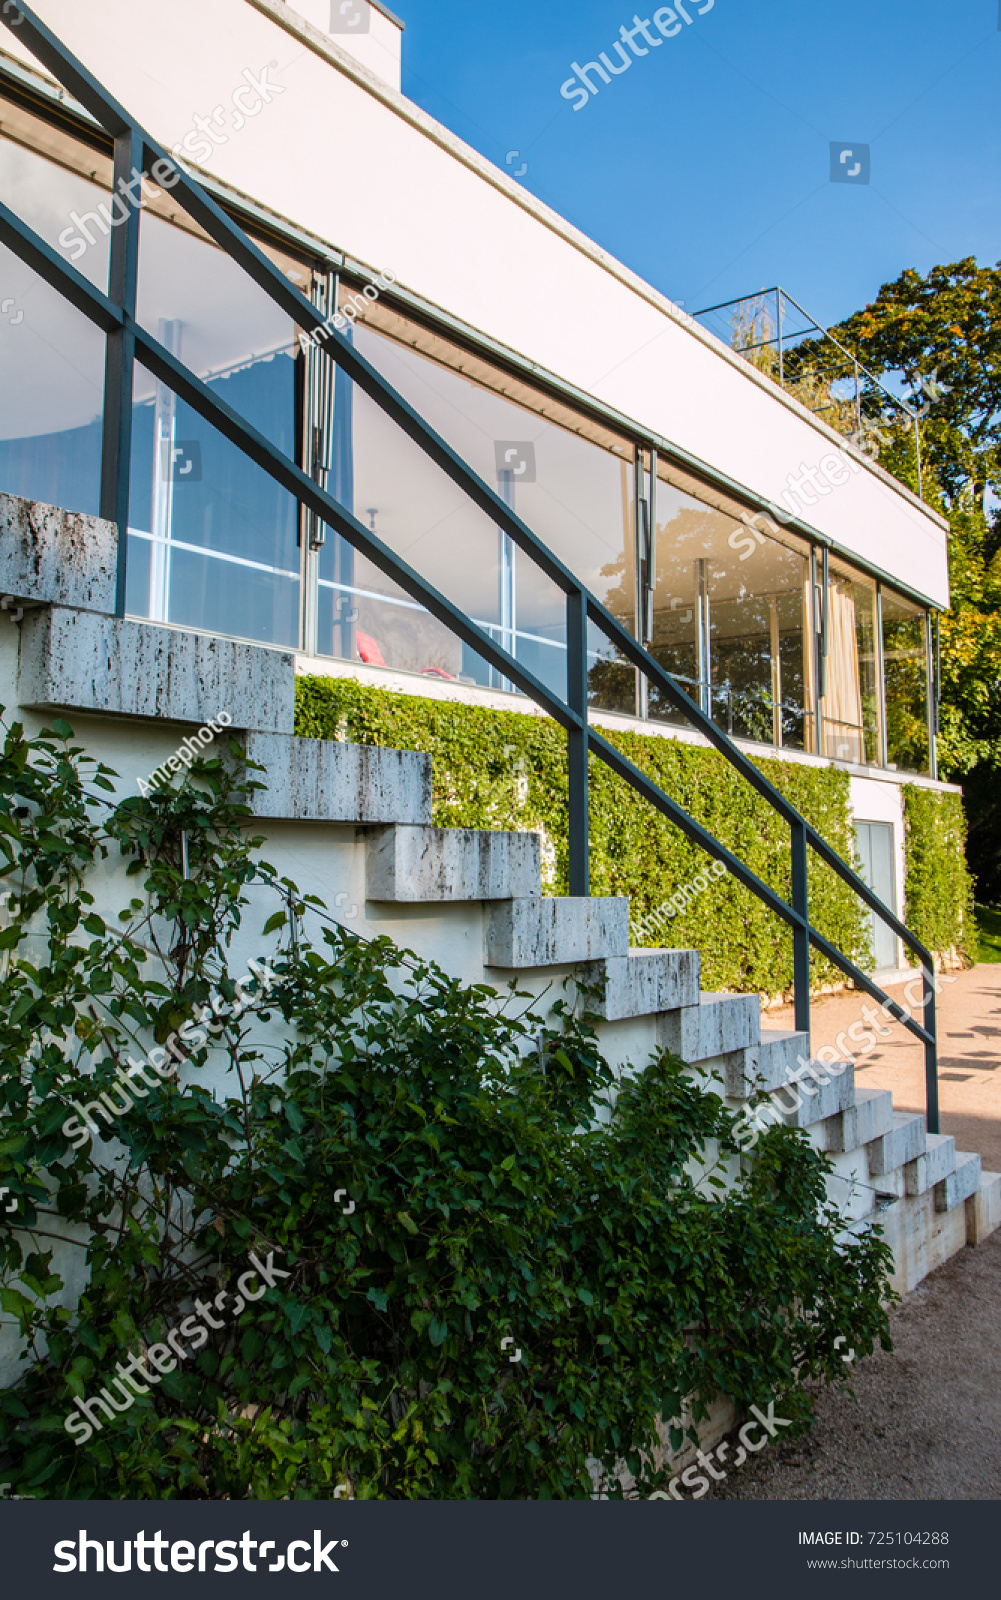 Villa Tugendhat Villa Tugendhat Historical Building Brno Czech Stock Photo Edit